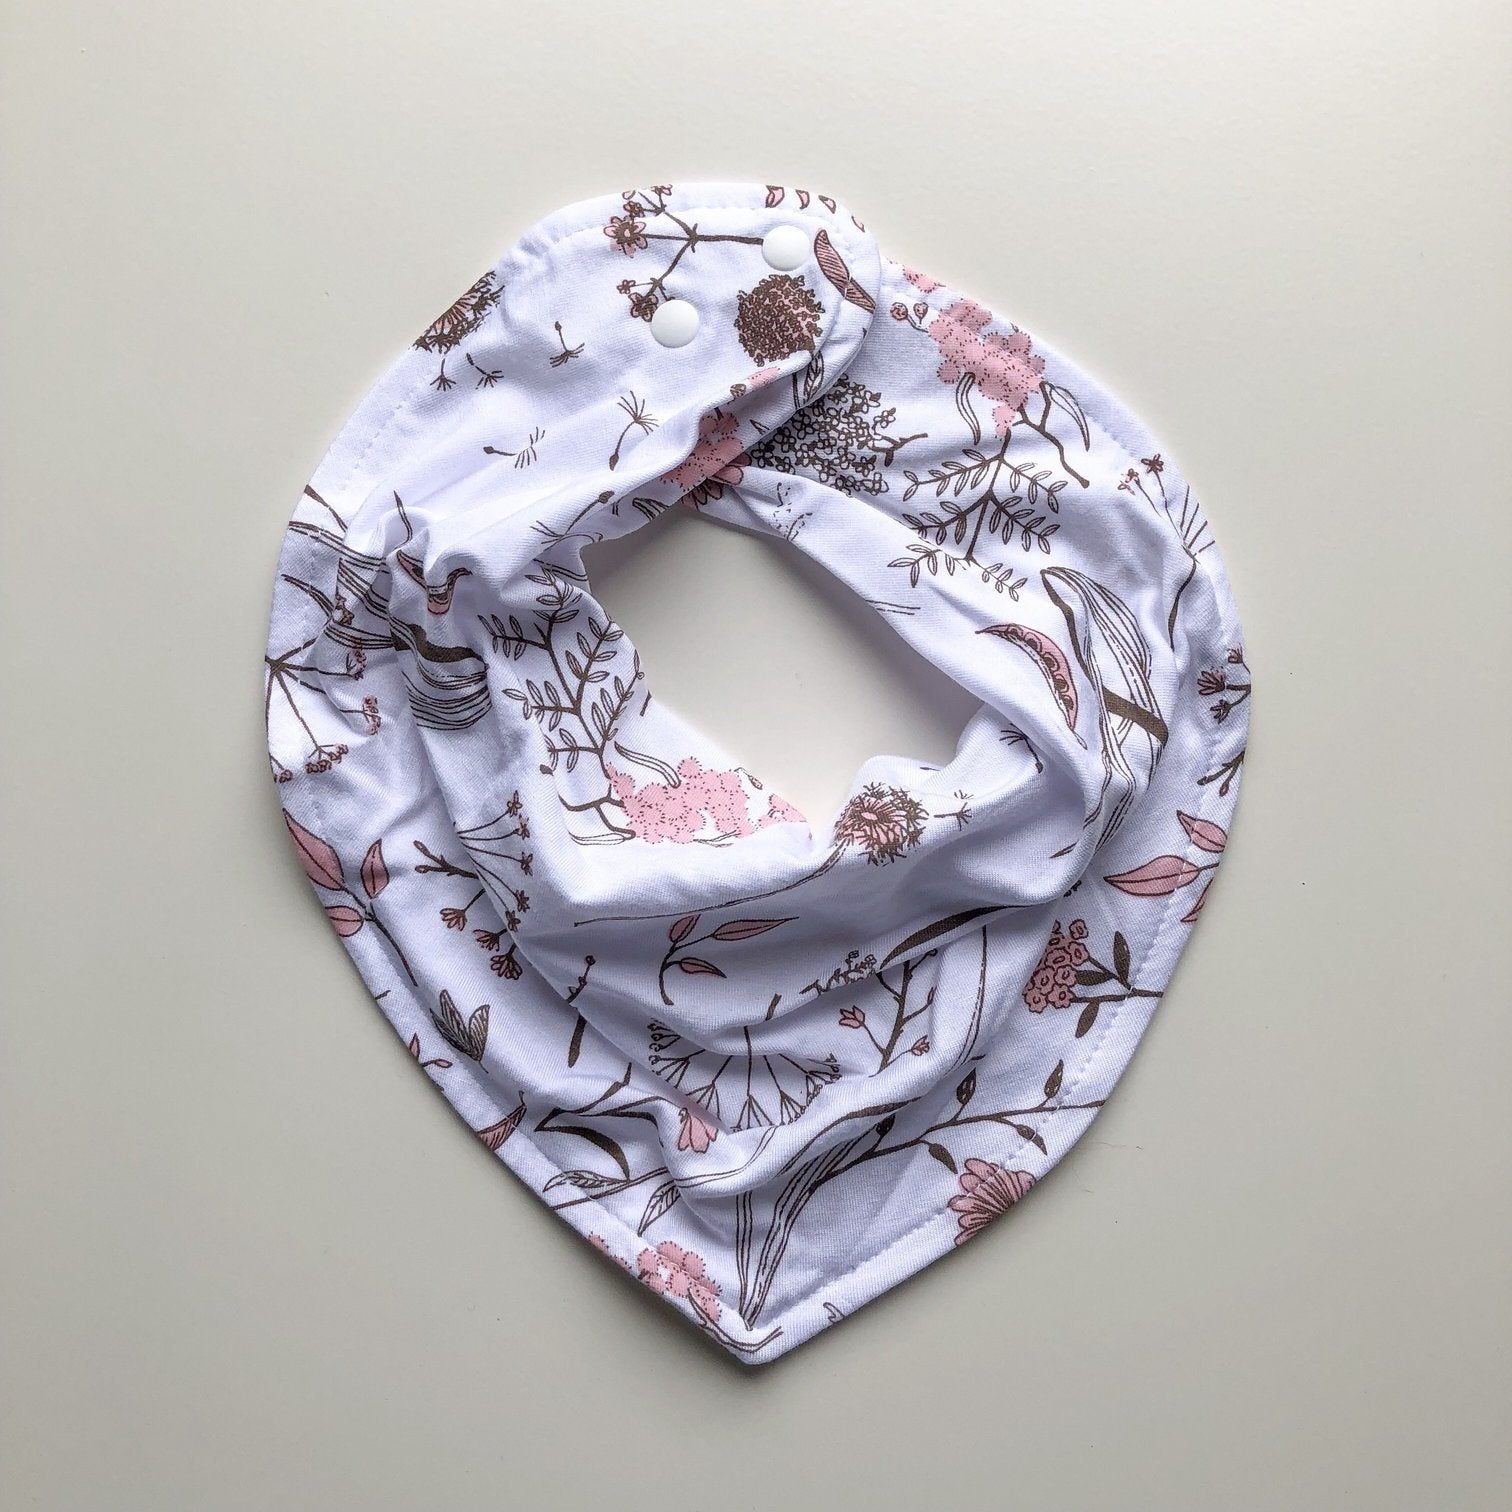 LUNA'S TREASURES - Wild Meadow Pink Petals Dribble Bib